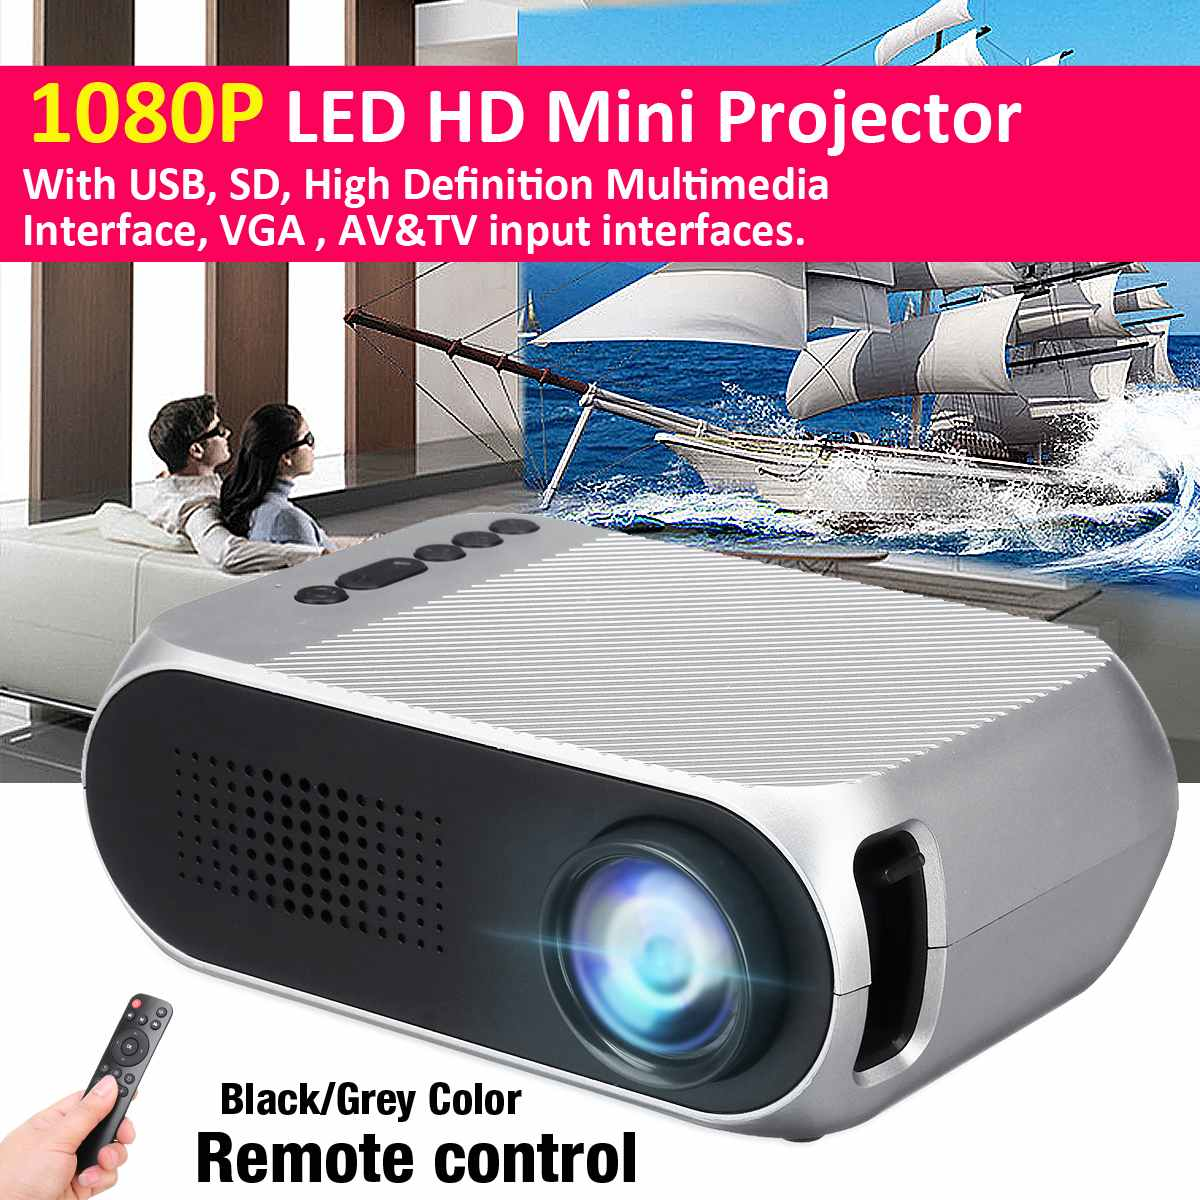 1920*1080 LED Mini Projector  White/Gray/Black YG320 Home HD Mini Portable Projector Supports 23 Languages1920*1080 LED Mini Projector  White/Gray/Black YG320 Home HD Mini Portable Projector Supports 23 Languages